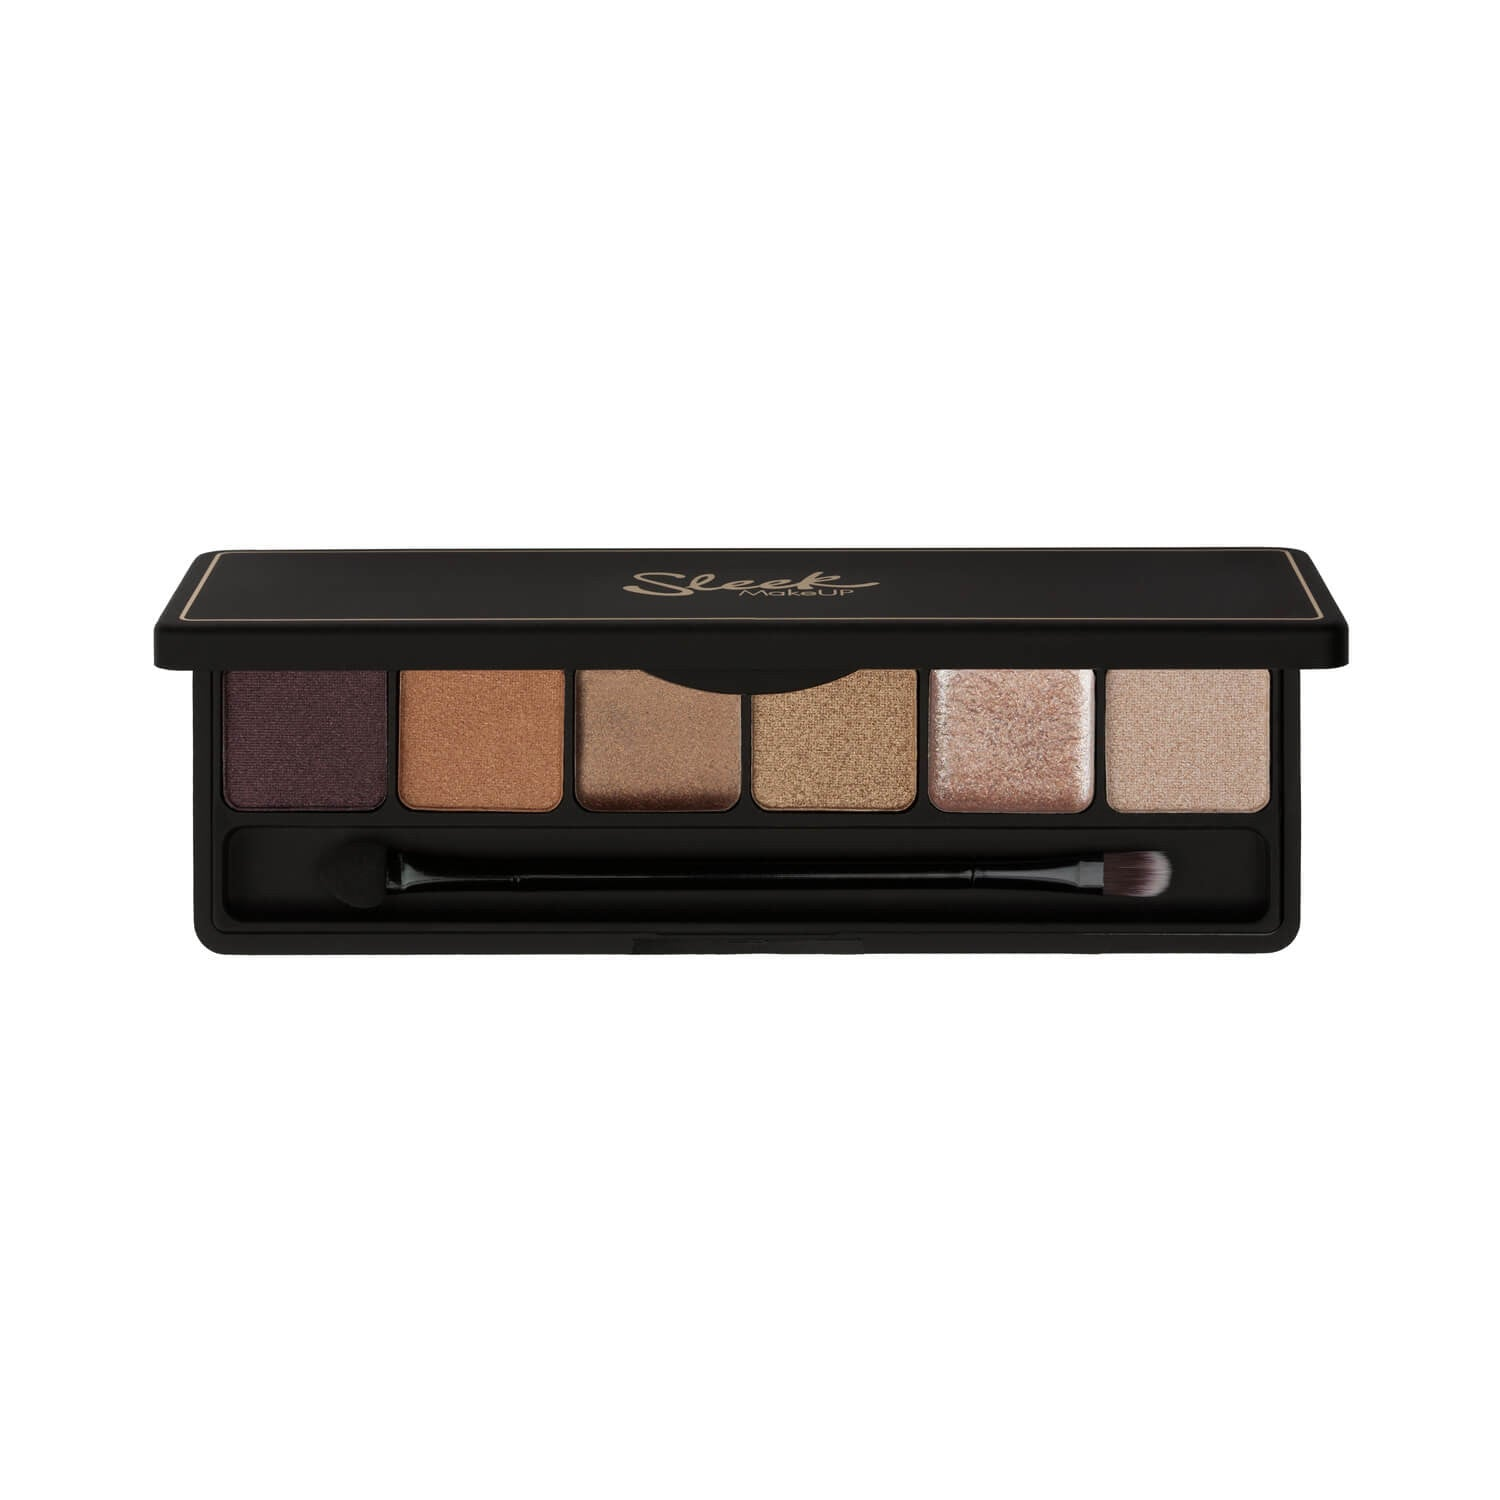 Sleek Makeup i-Lust Palette in Gold Standard